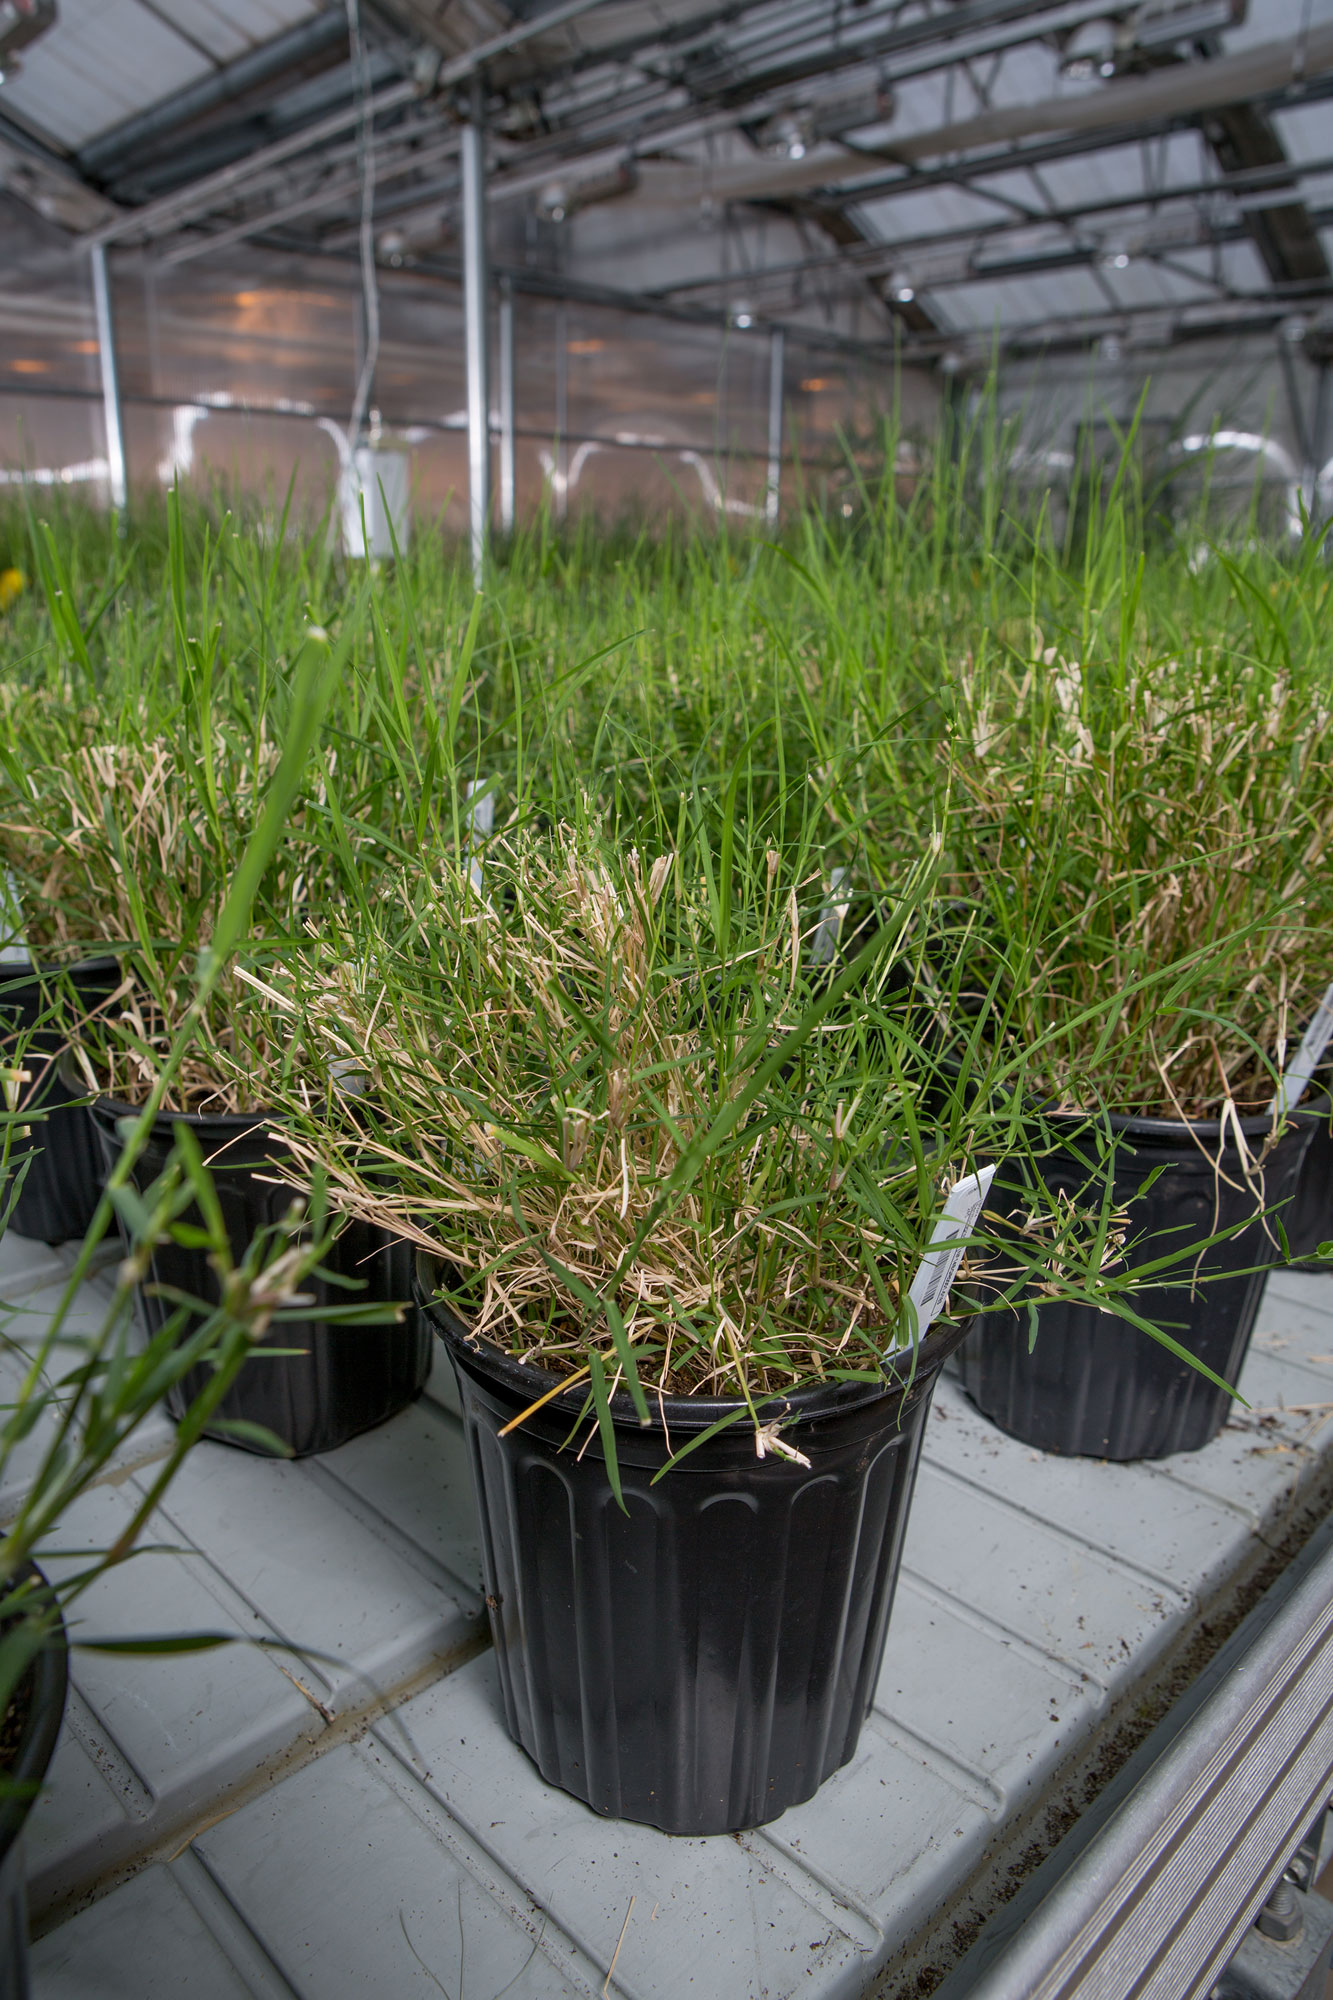 Bermudagrass in planters